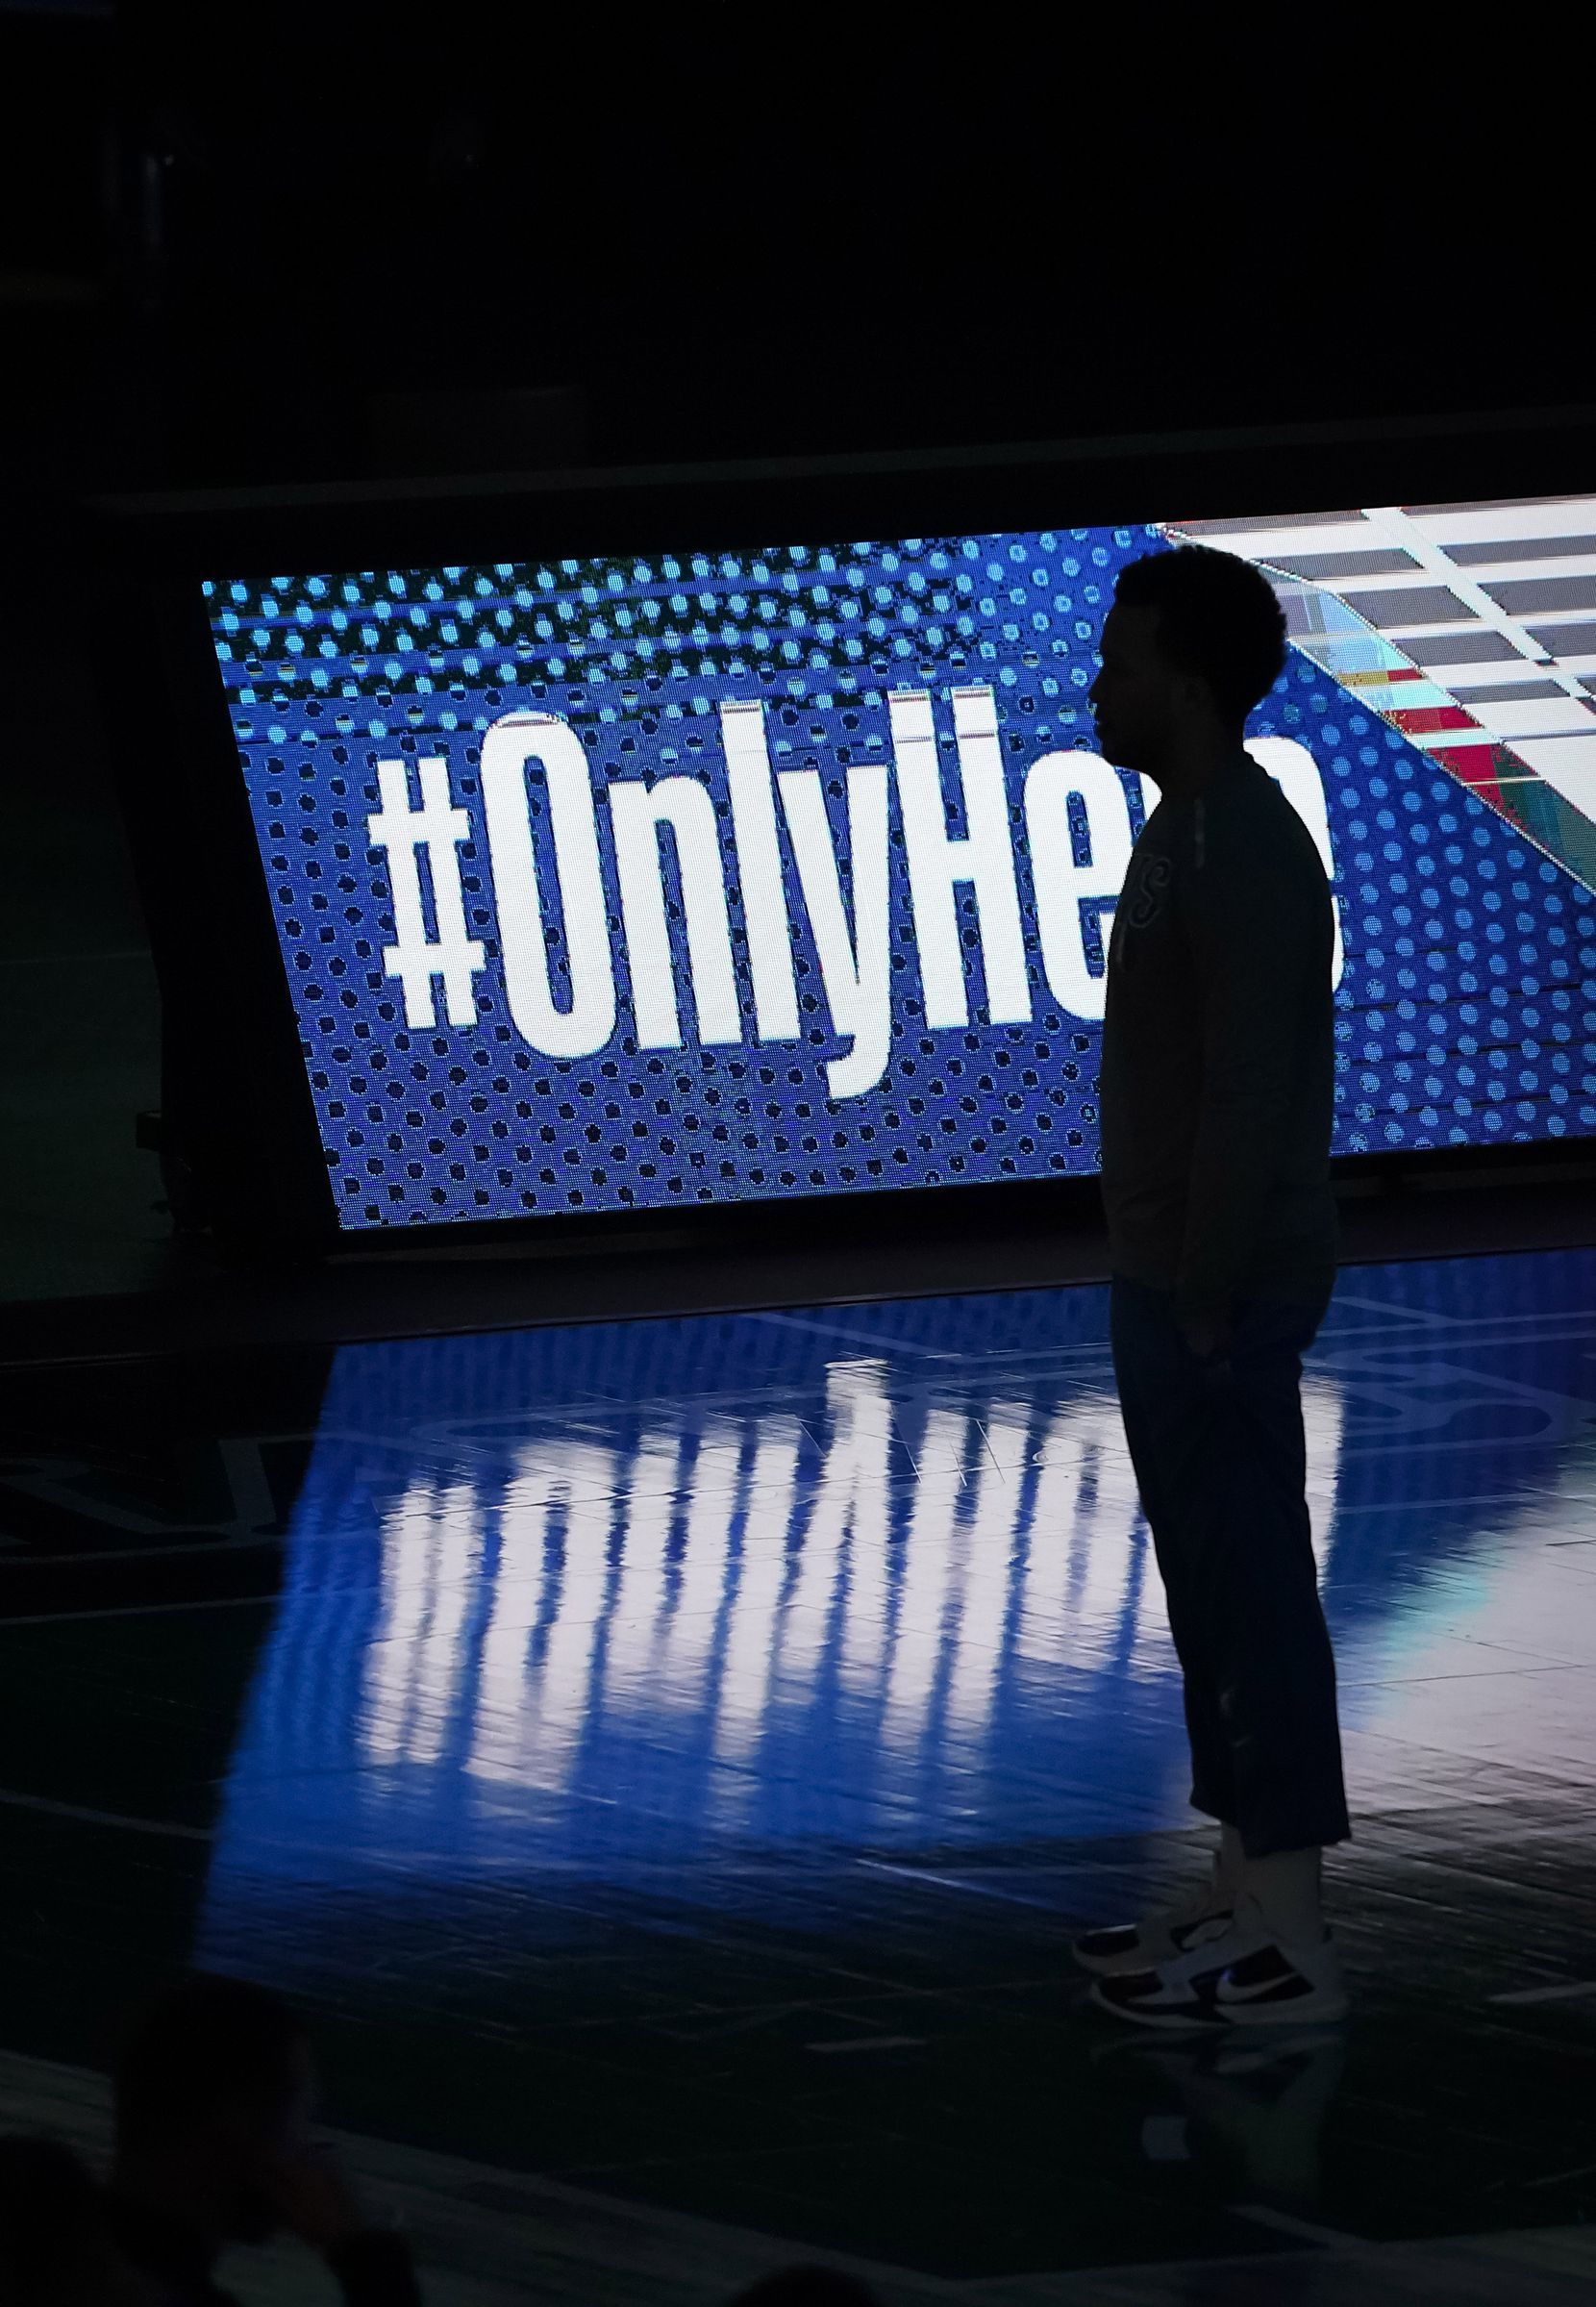 Dallas Mavericks guard Jalen Brunson stands for the pregame introductions before an NBA basketball game against the LA Clippers at American Airlines Center on Wednesday, March 17, 2021, in Dallas.